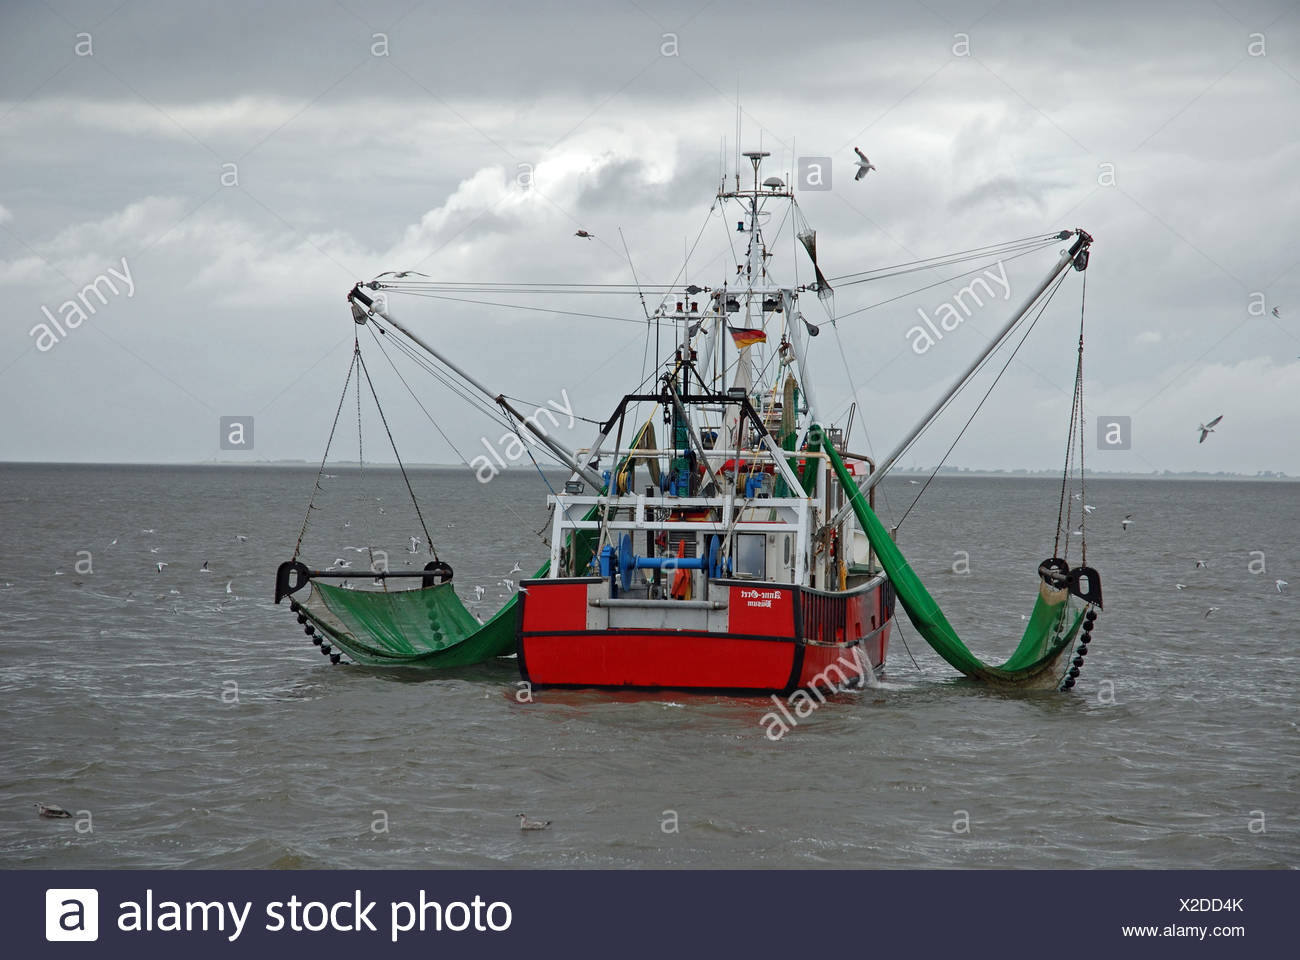 Germany Europe work occupation occupations Boat boats European fishing fishery shrimper Sea fish sea gull - Stock Image